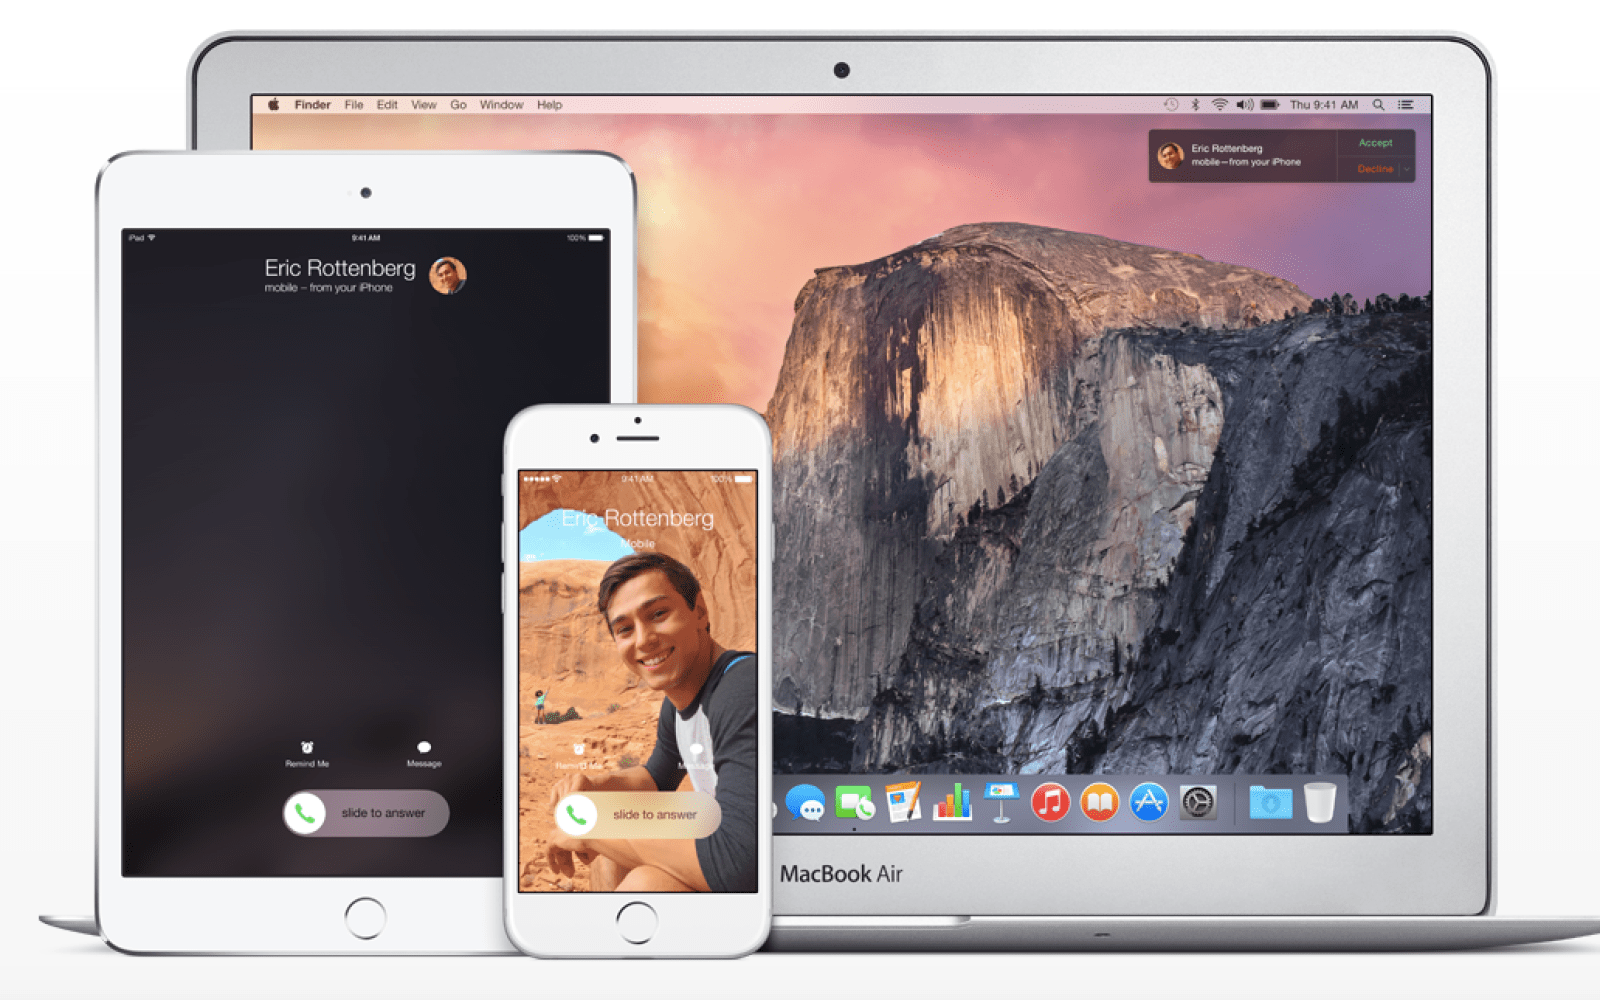 Yosemite & iOS 8 How-to: Send and receive phone calls from your Mac and iPad